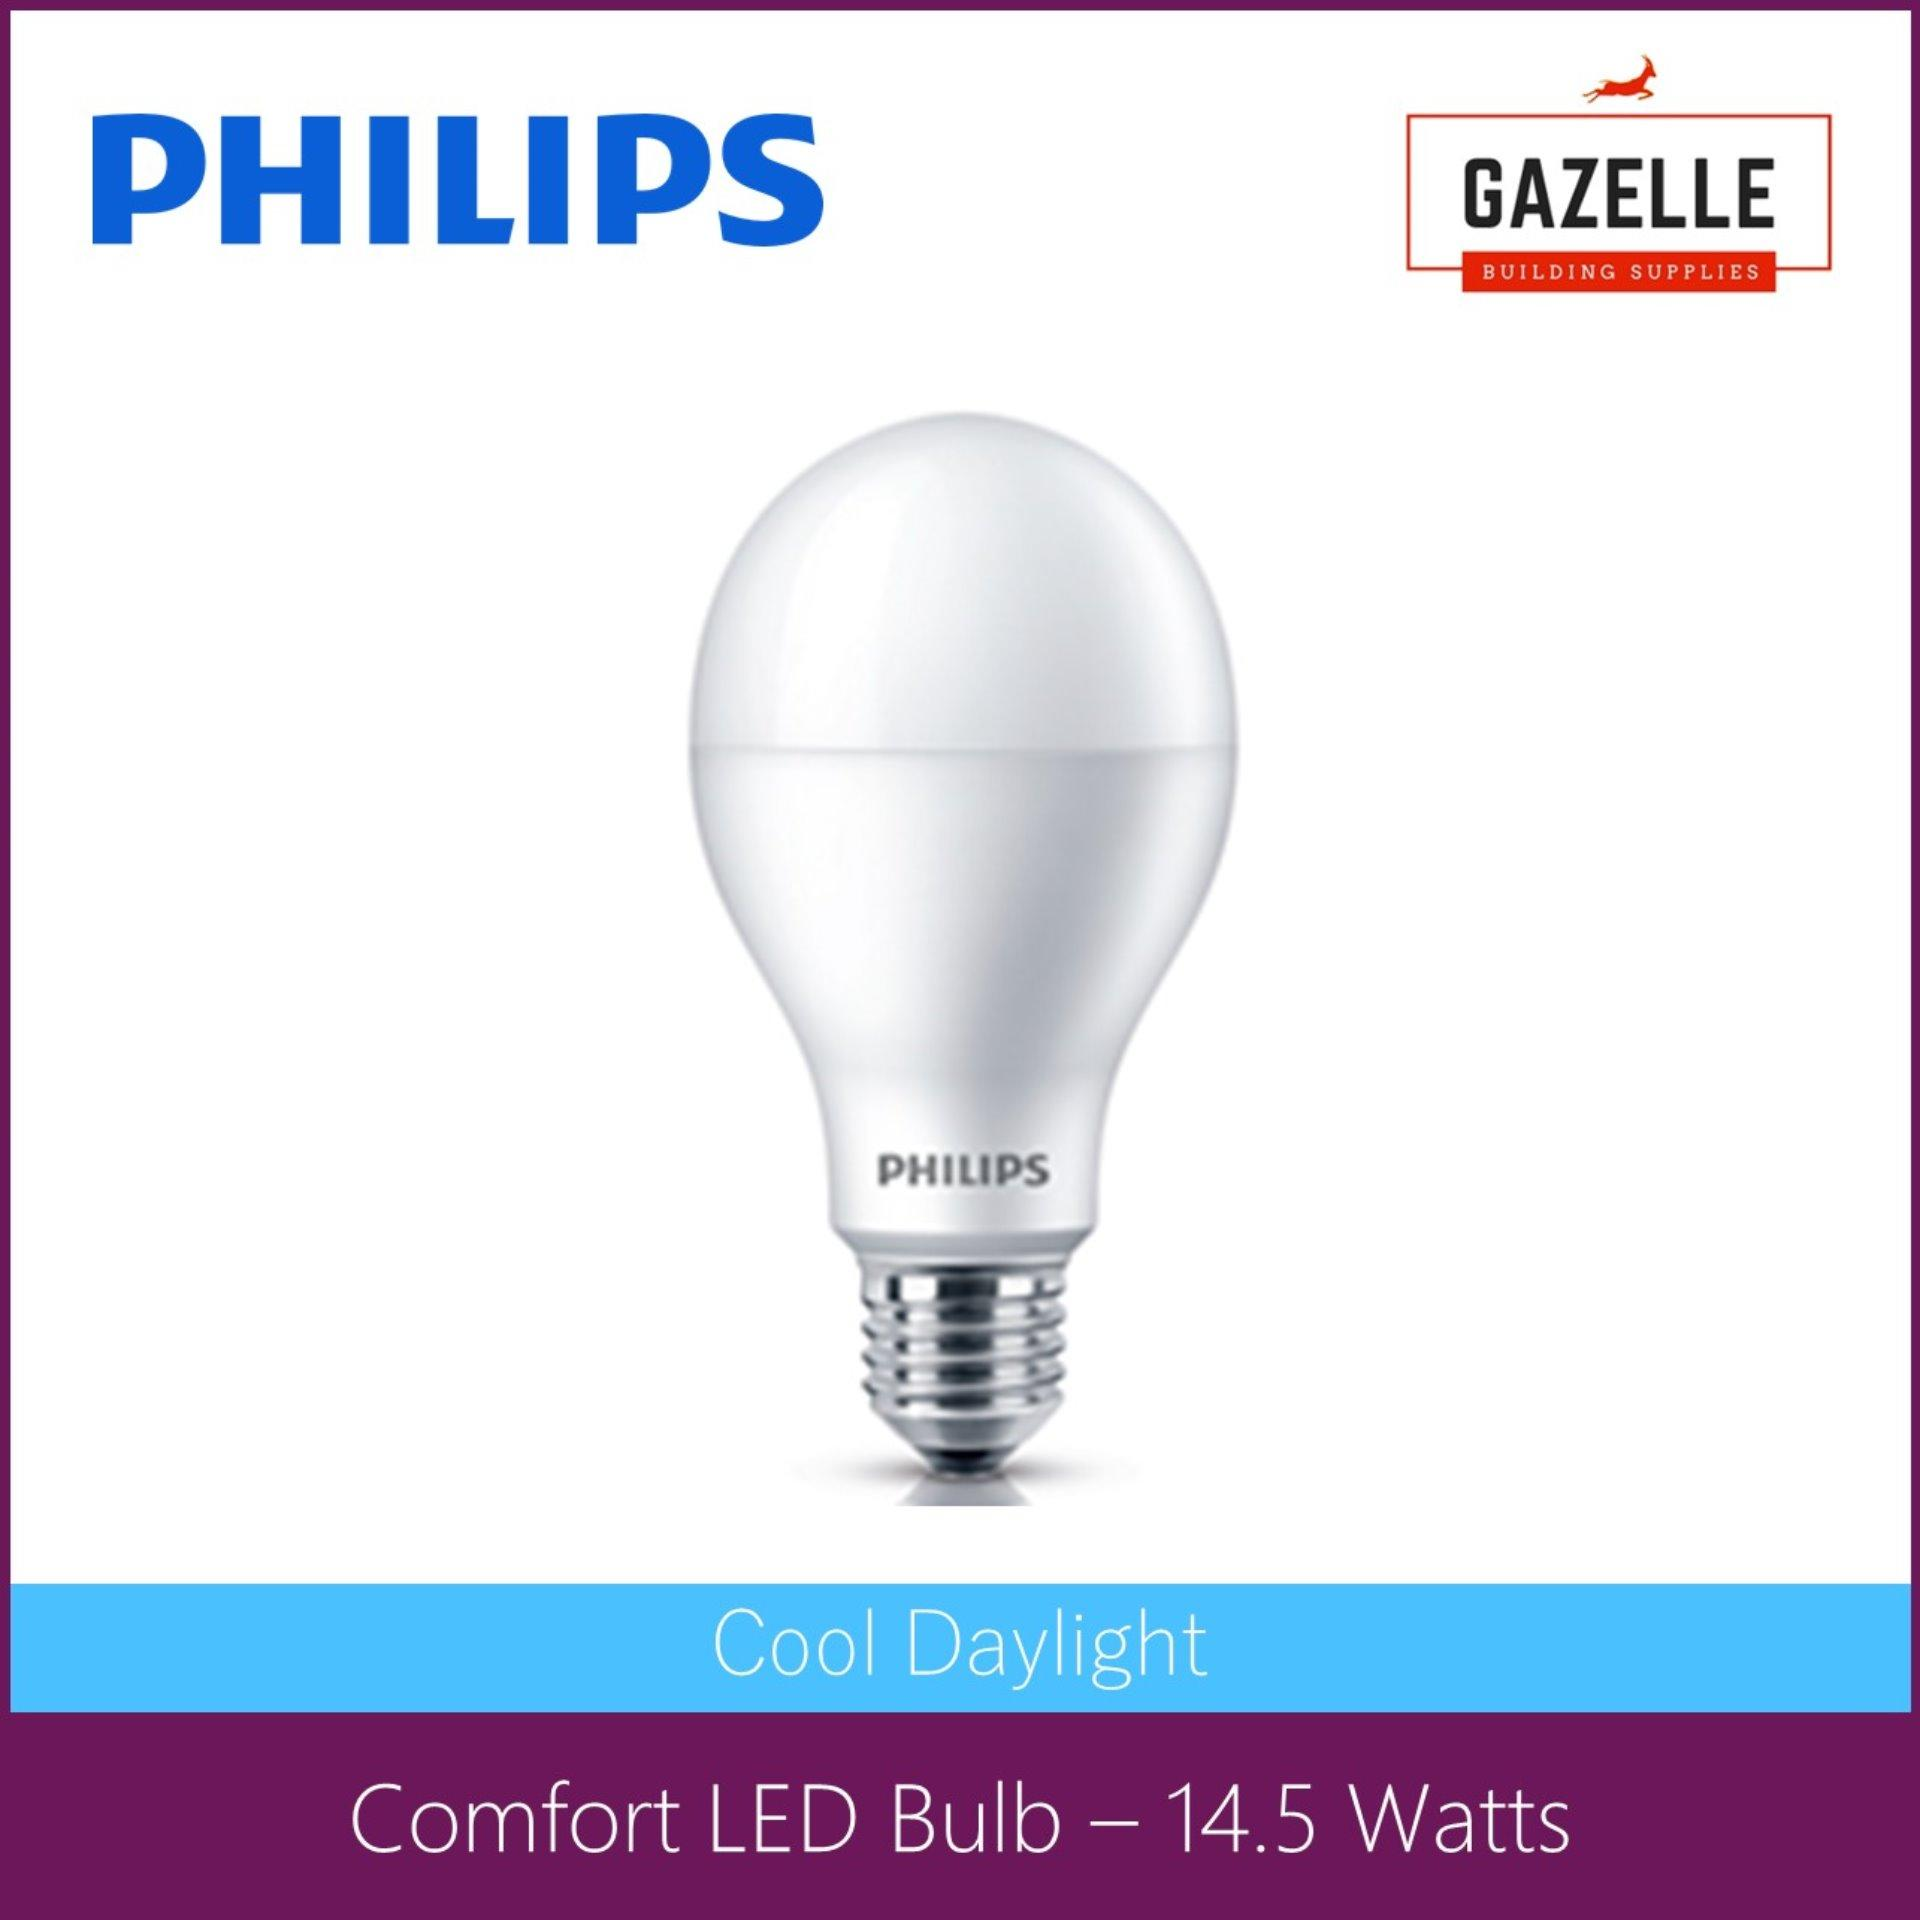 Philips Philippines Price List Home Theater Tv Electric Shaver Pq206 High Lumen Daylight Led Bulb 145 Watts